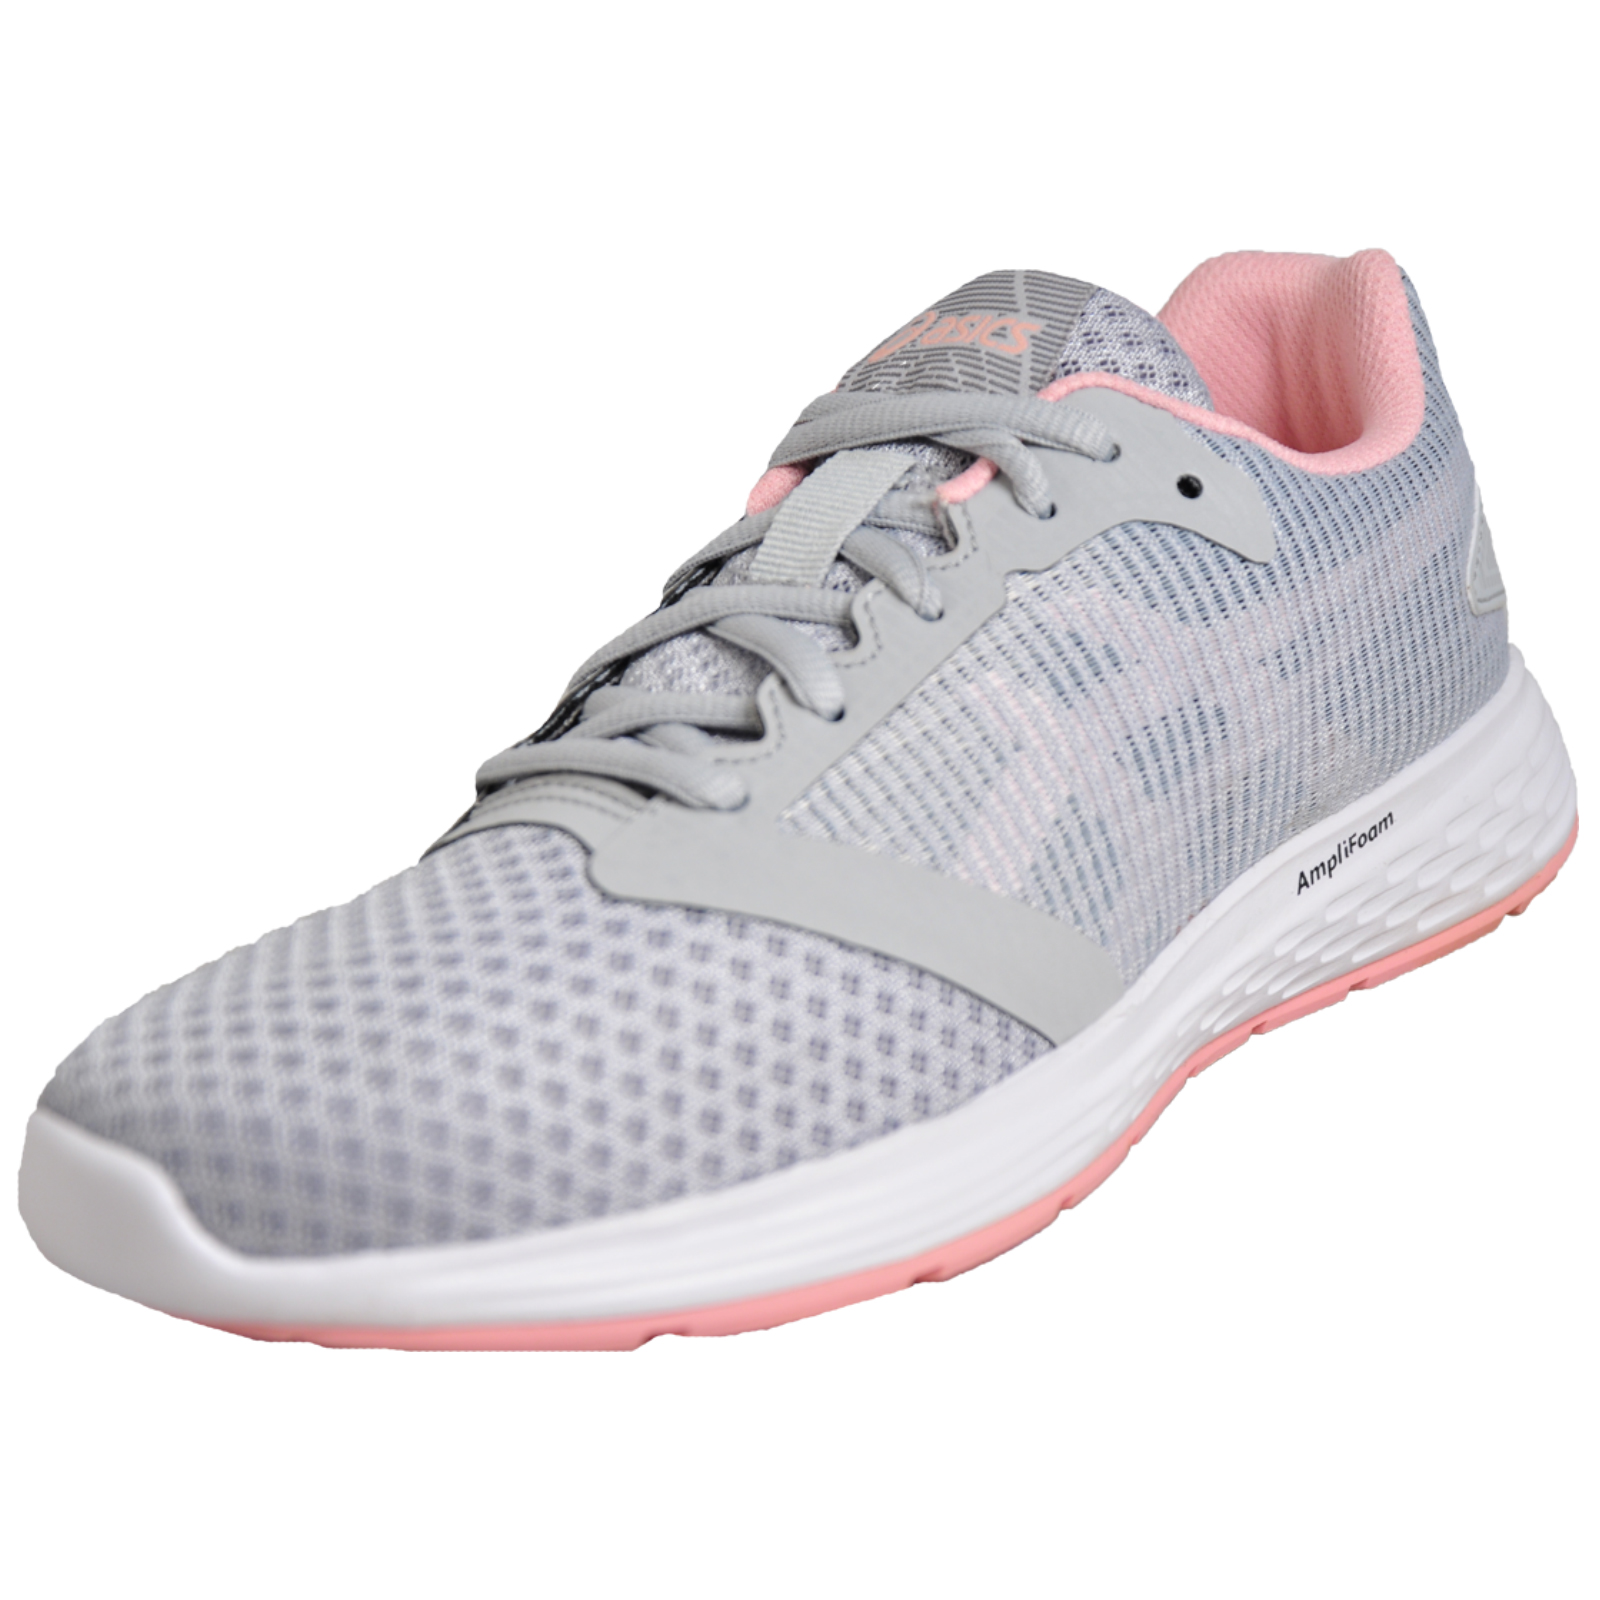 feee18dd29c Details about Asics Patriot 10 Womens Running Shoes Fitness Gym Sports  Trainers Grey